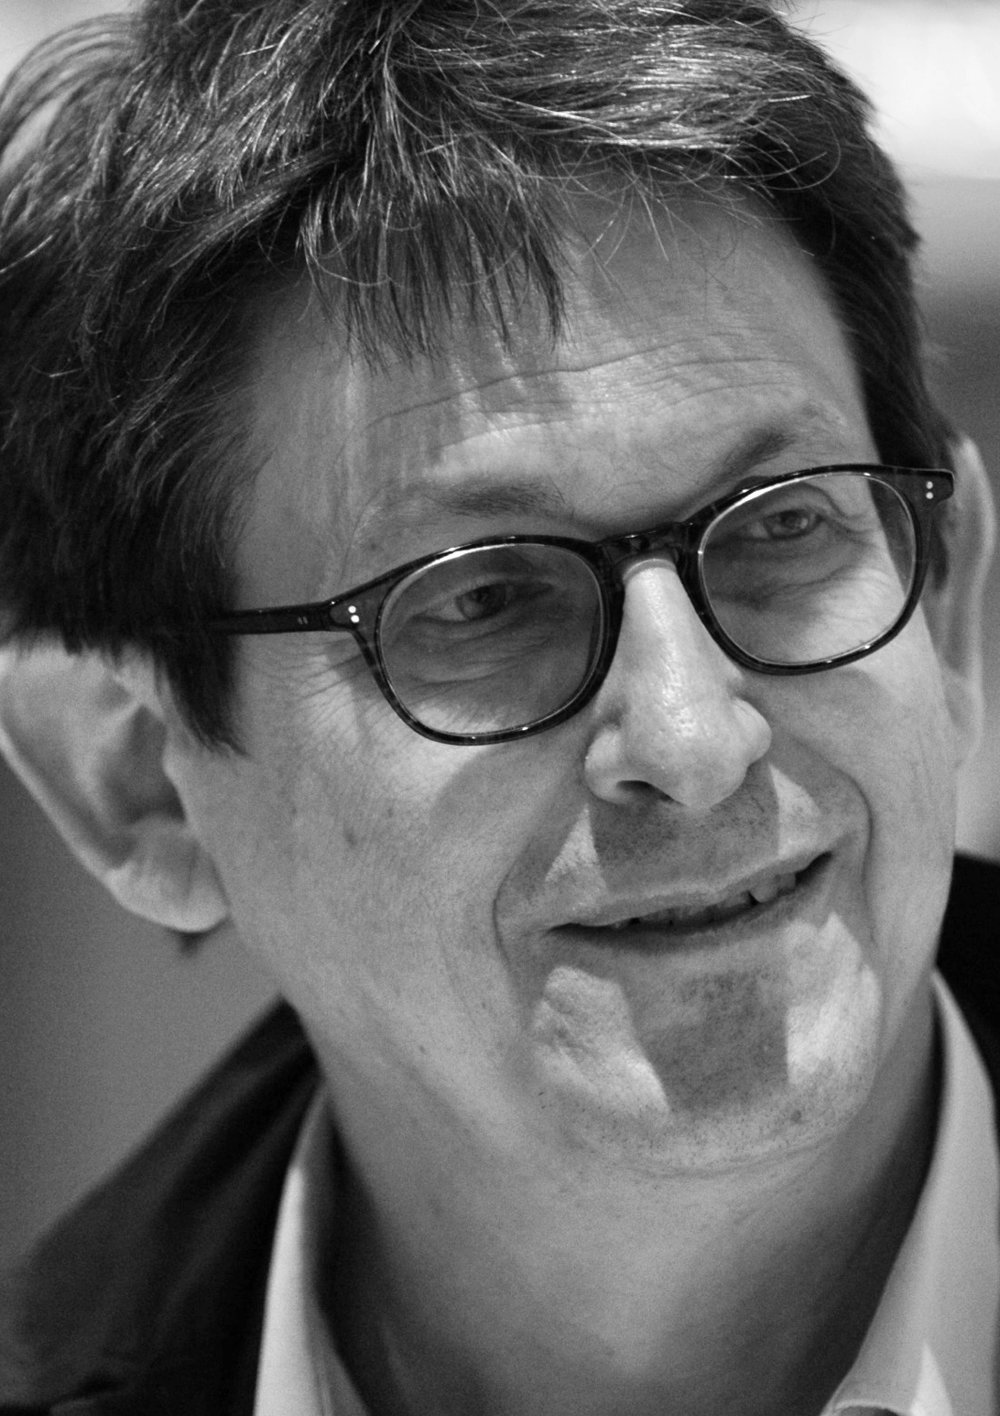 Alan Rusbridger, journalist